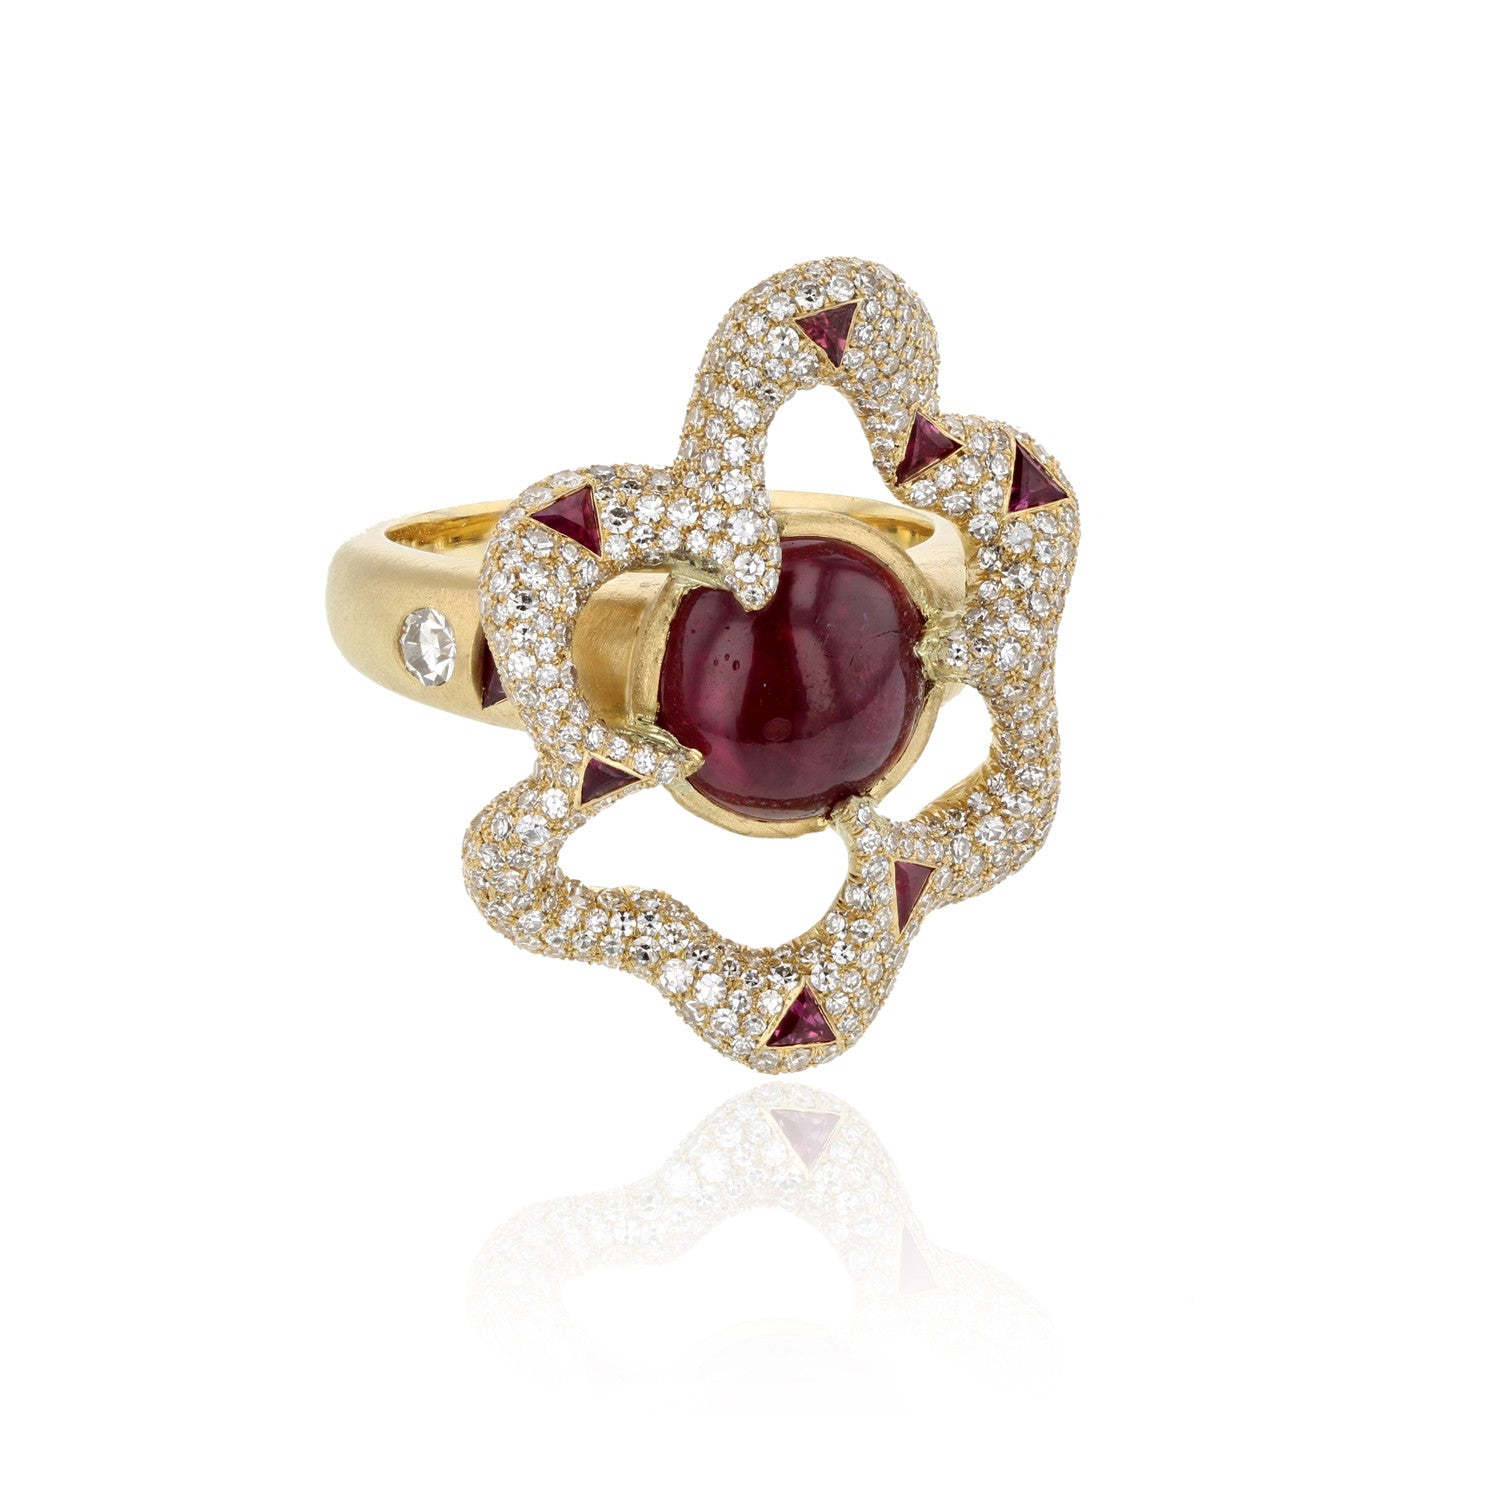 Fantasia Ruby and Diamond Ring - 18K Yellow Gold